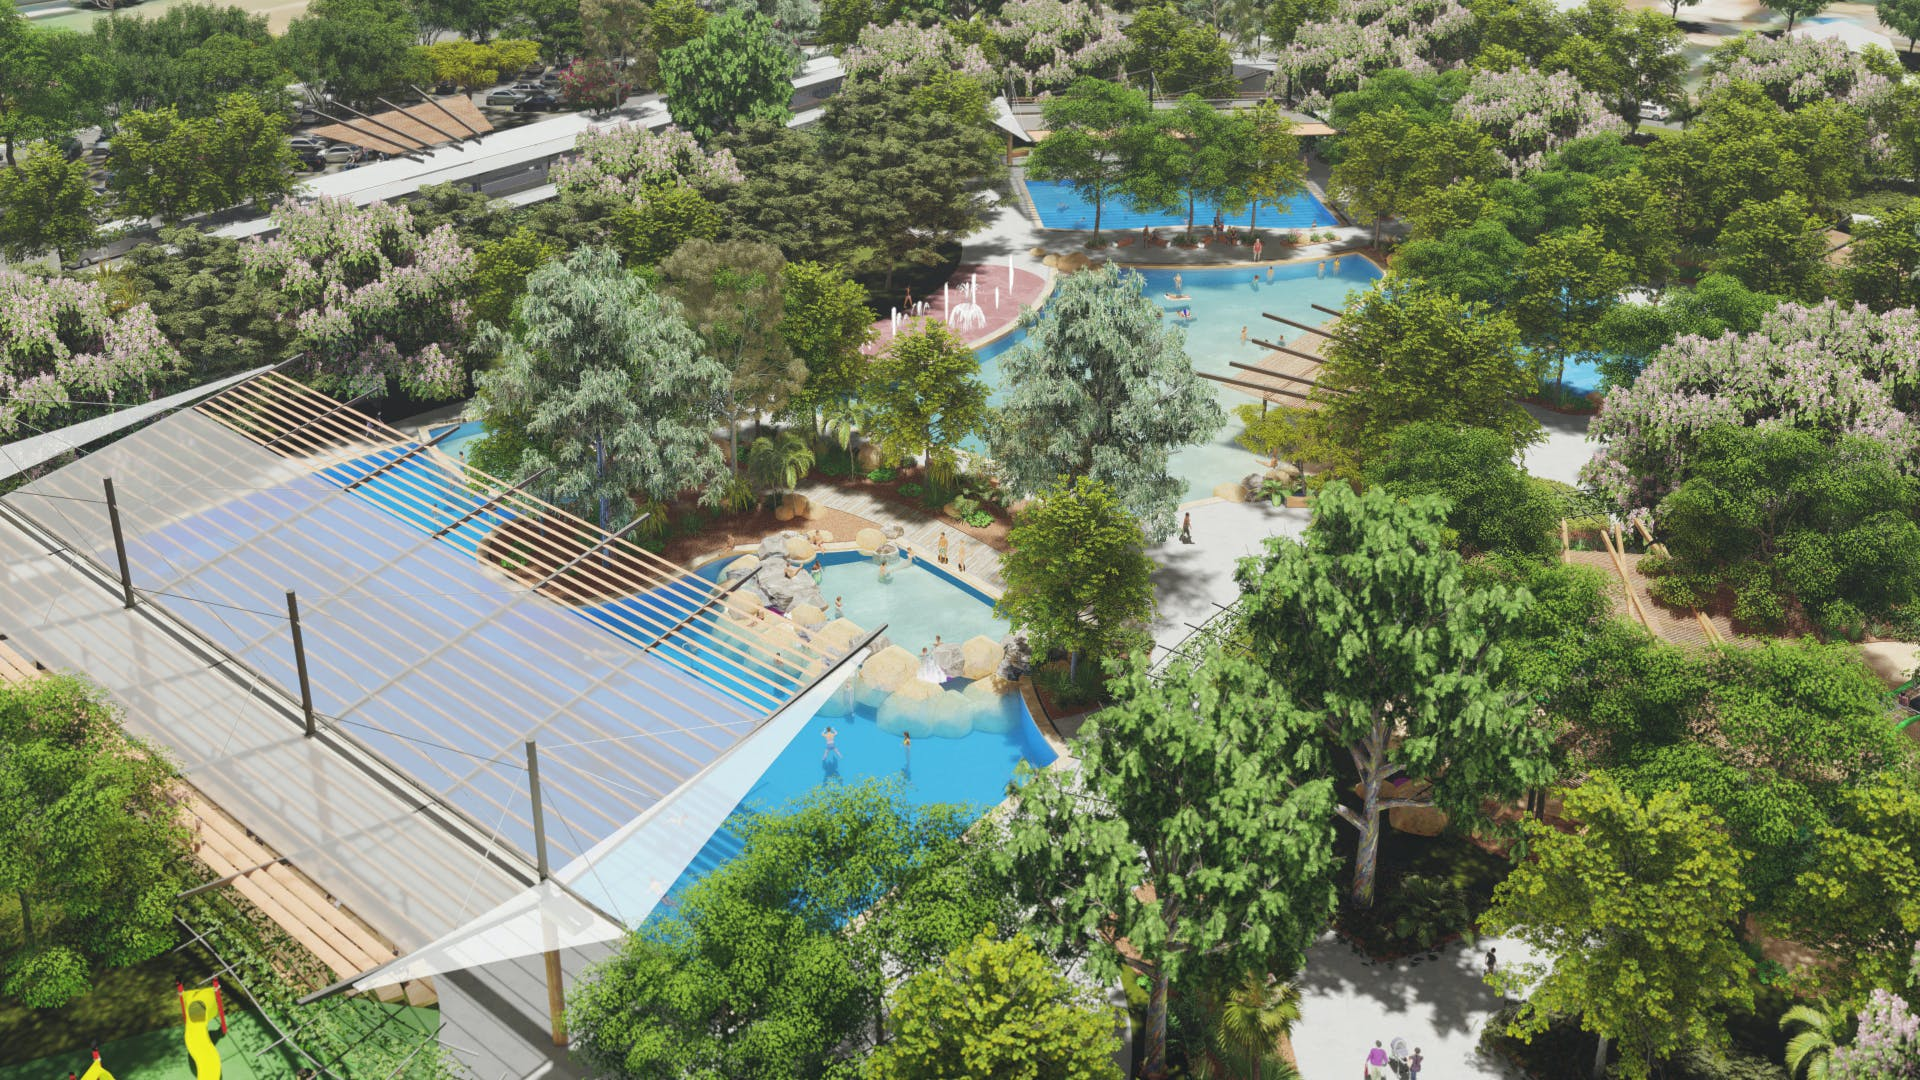 Casuarina Aquatic and Leisure Centre - Site Overview